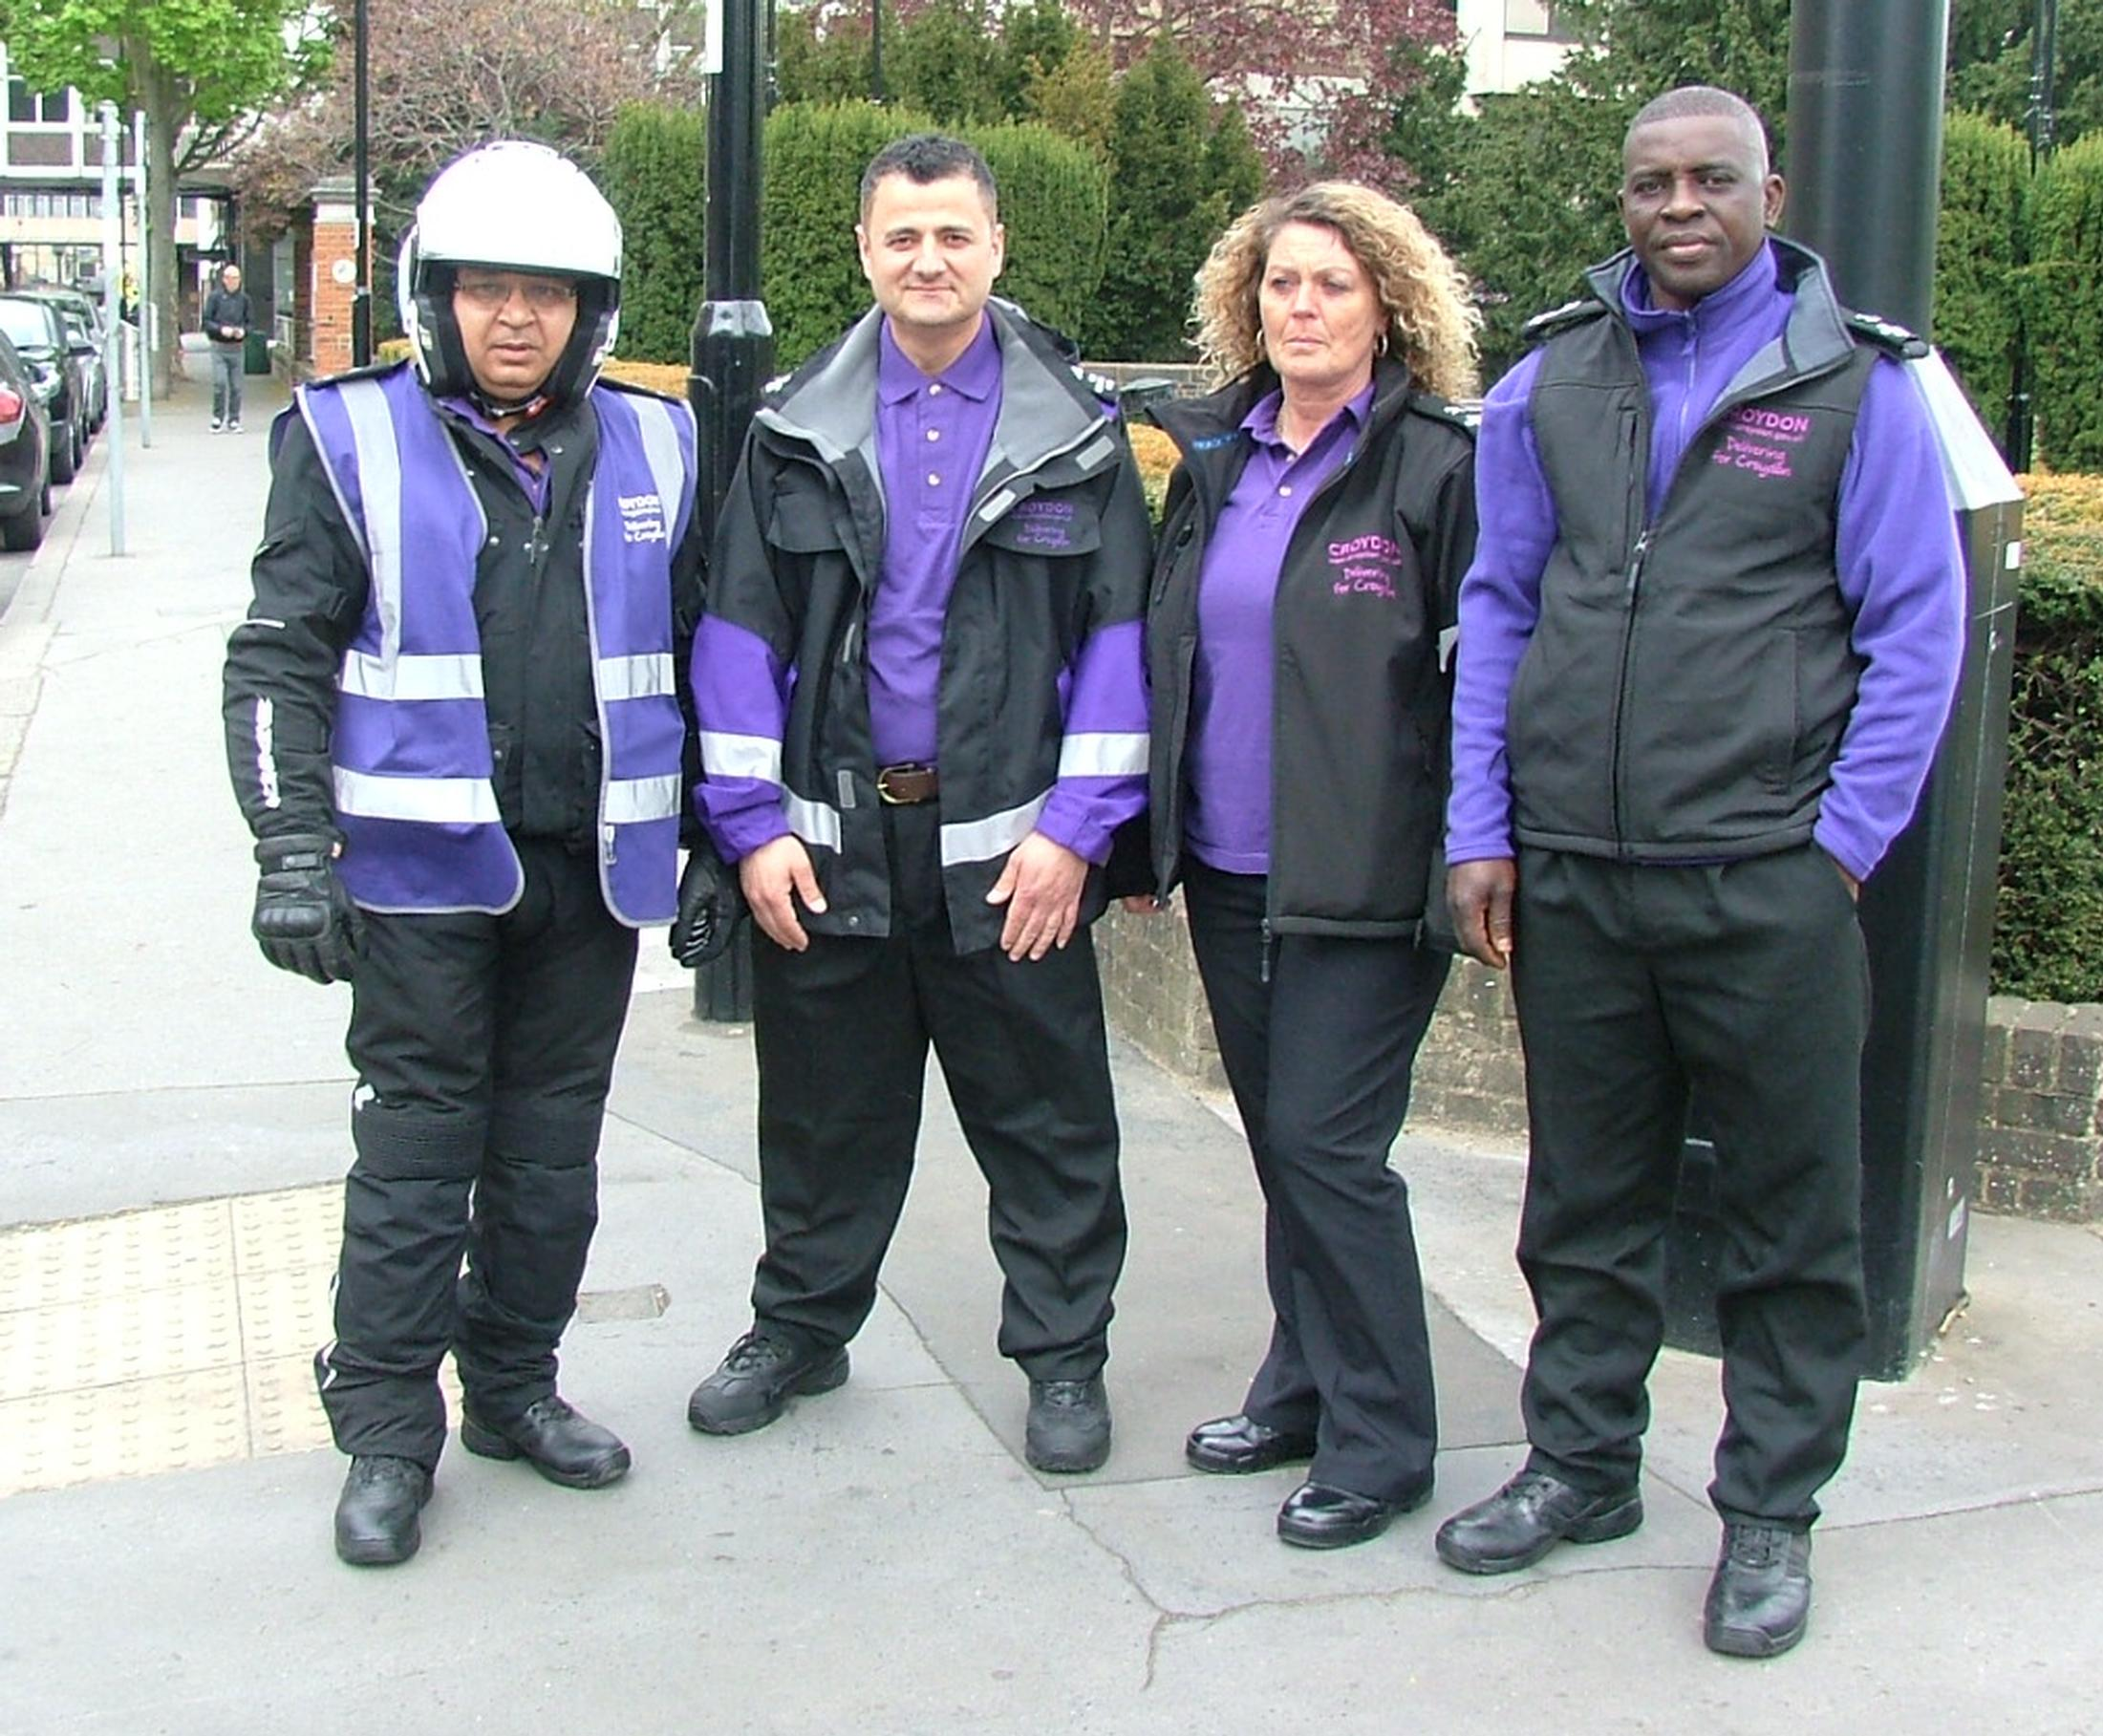 Croydon parking patrols are sporting a new look